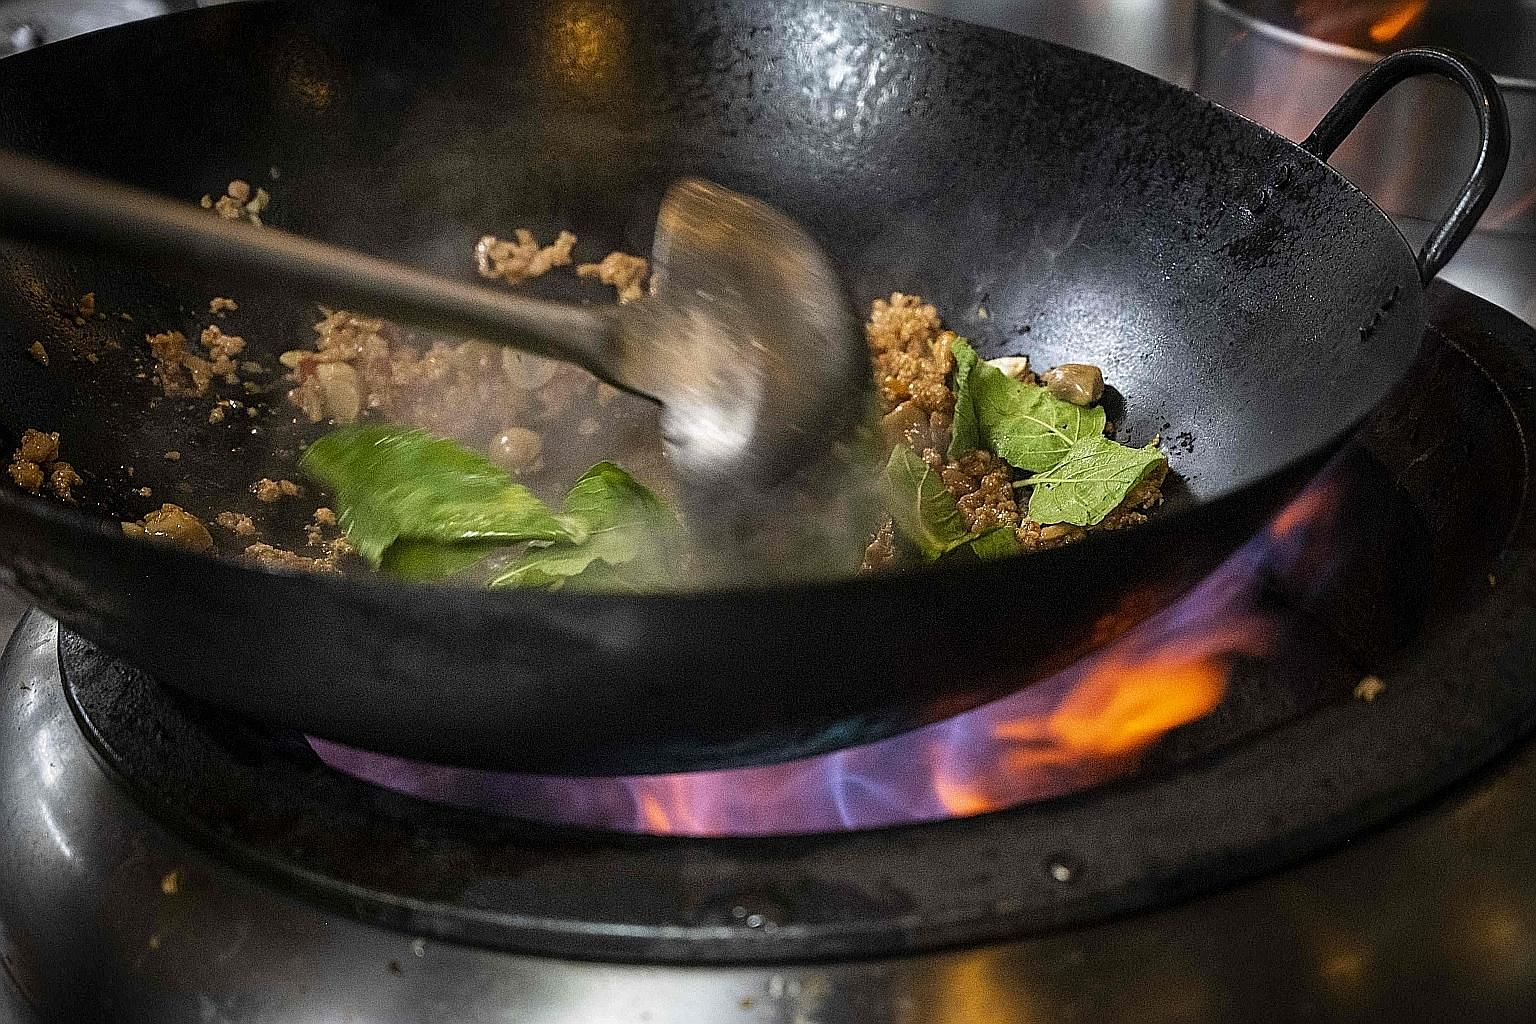 Experts agree that hawker stalls present the least problems when it comes to food poisoning - as their food is prepared on the spot, delivered steaming hot and consumed quickly, bacteria have less of a chance to multiply in it.